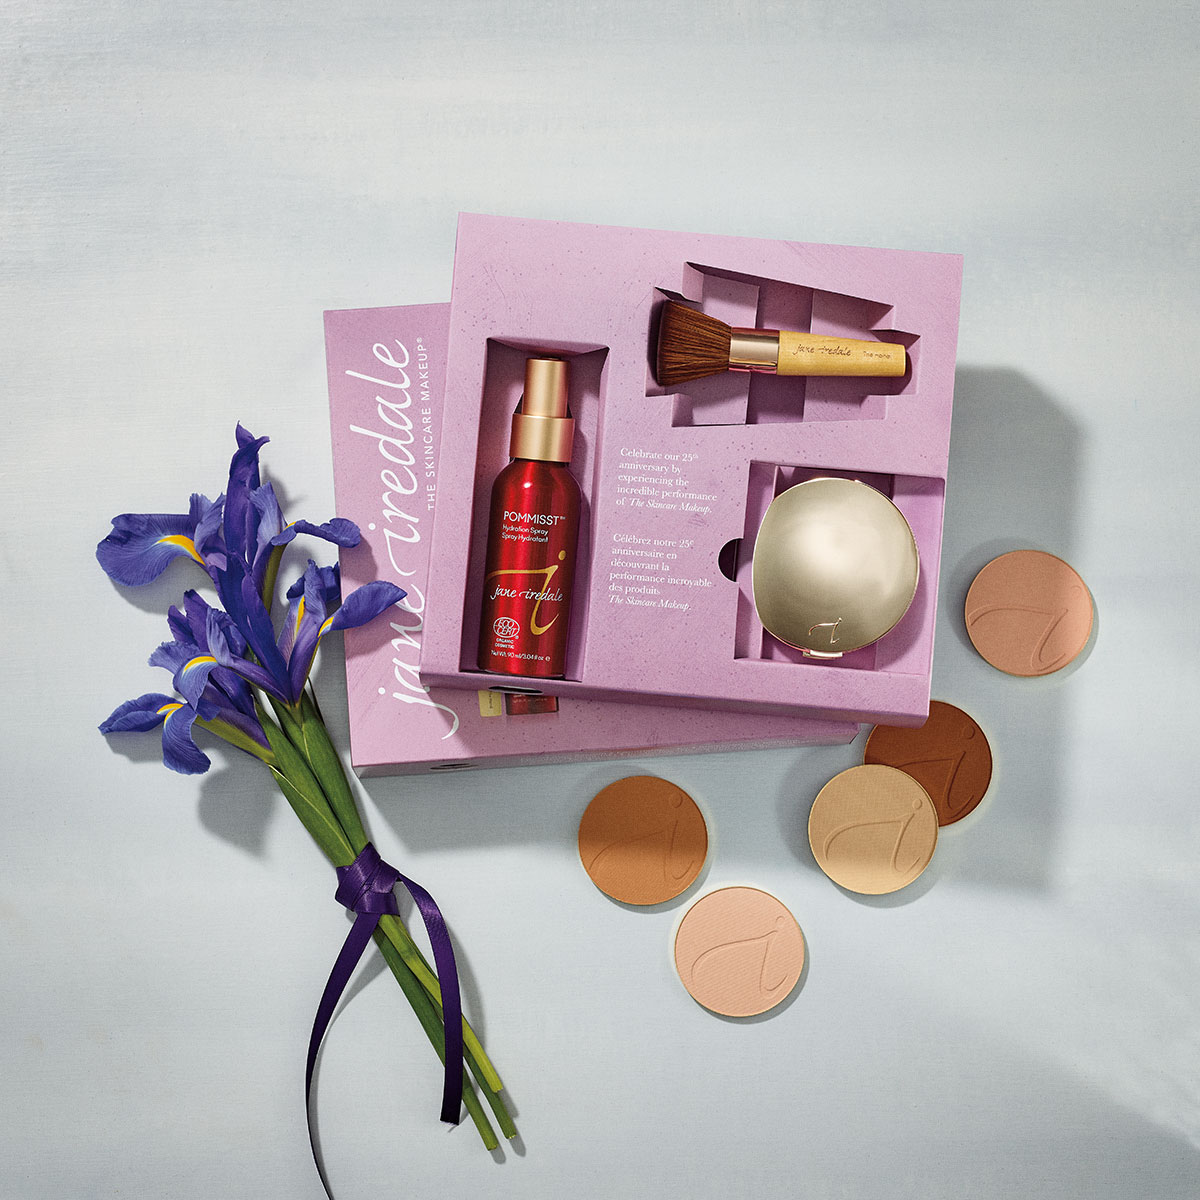 jane iredale - Complexion Perfection Kit